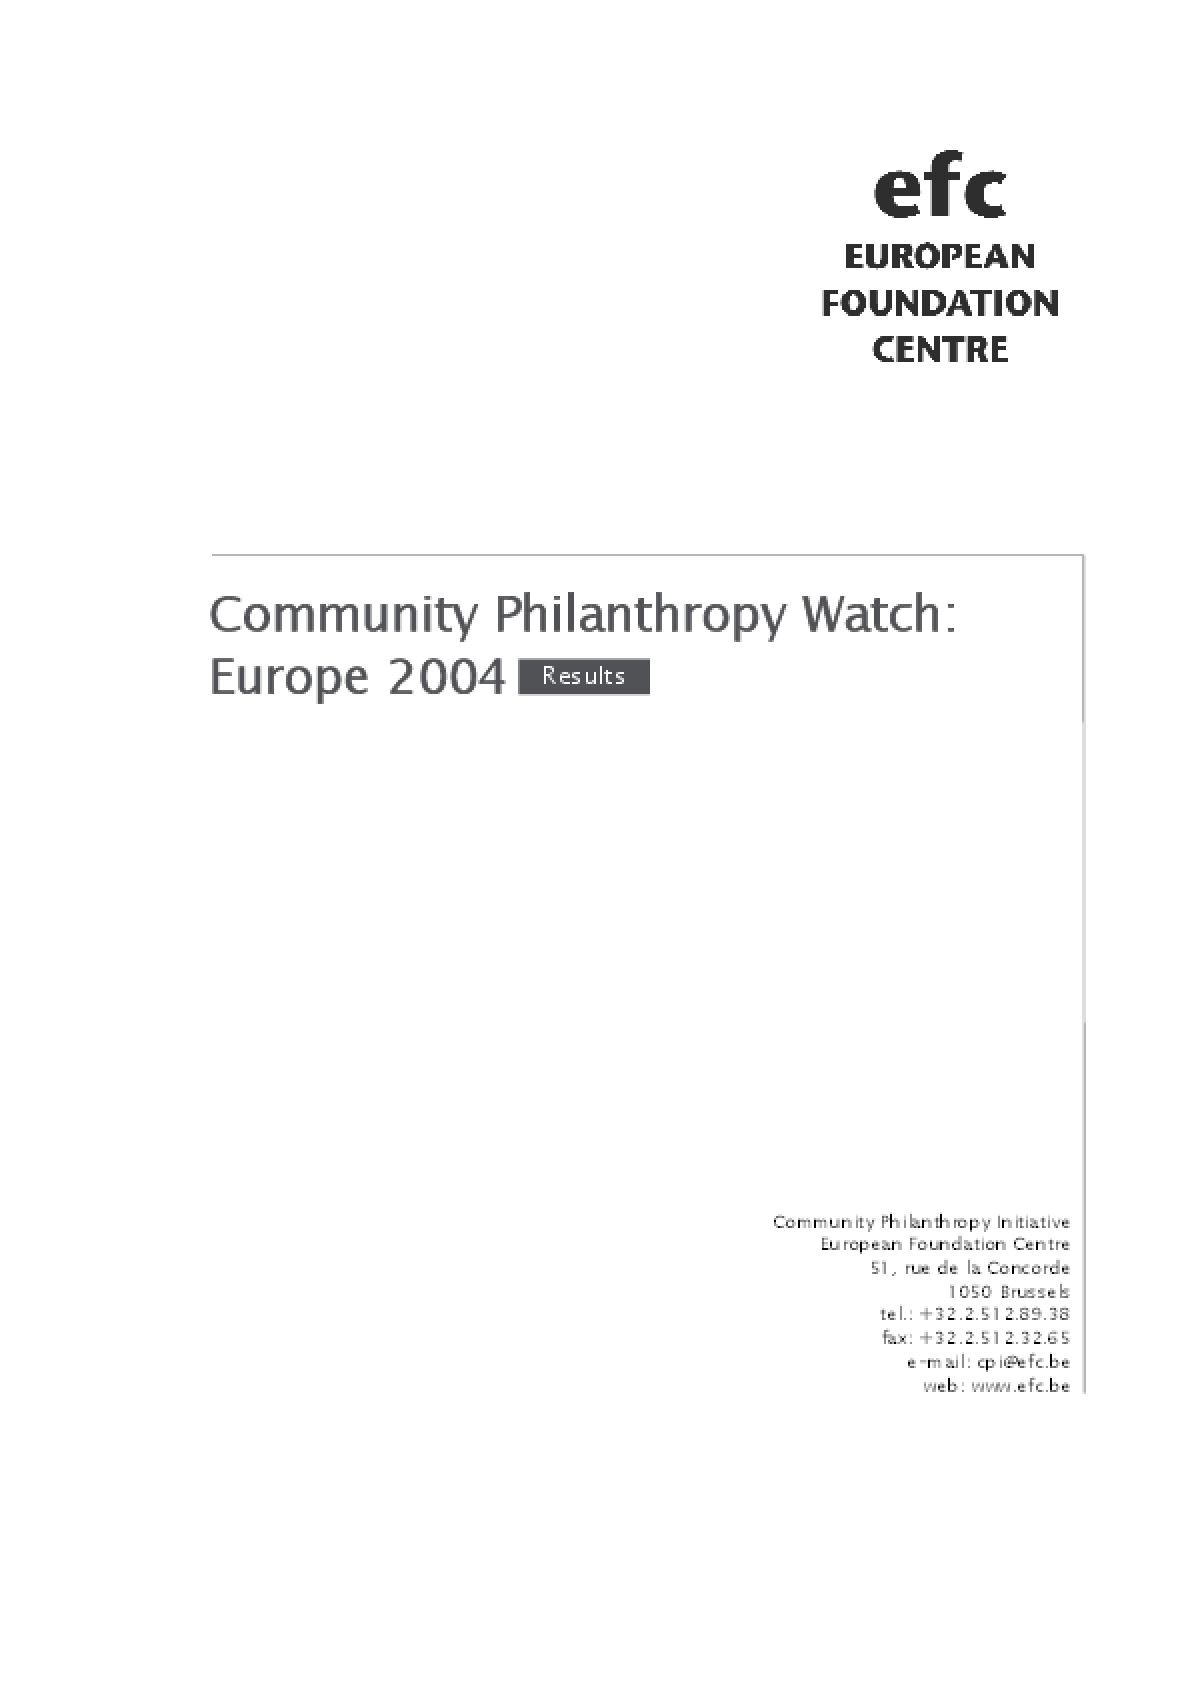 Community Philanthropy Watch: Europe 2004